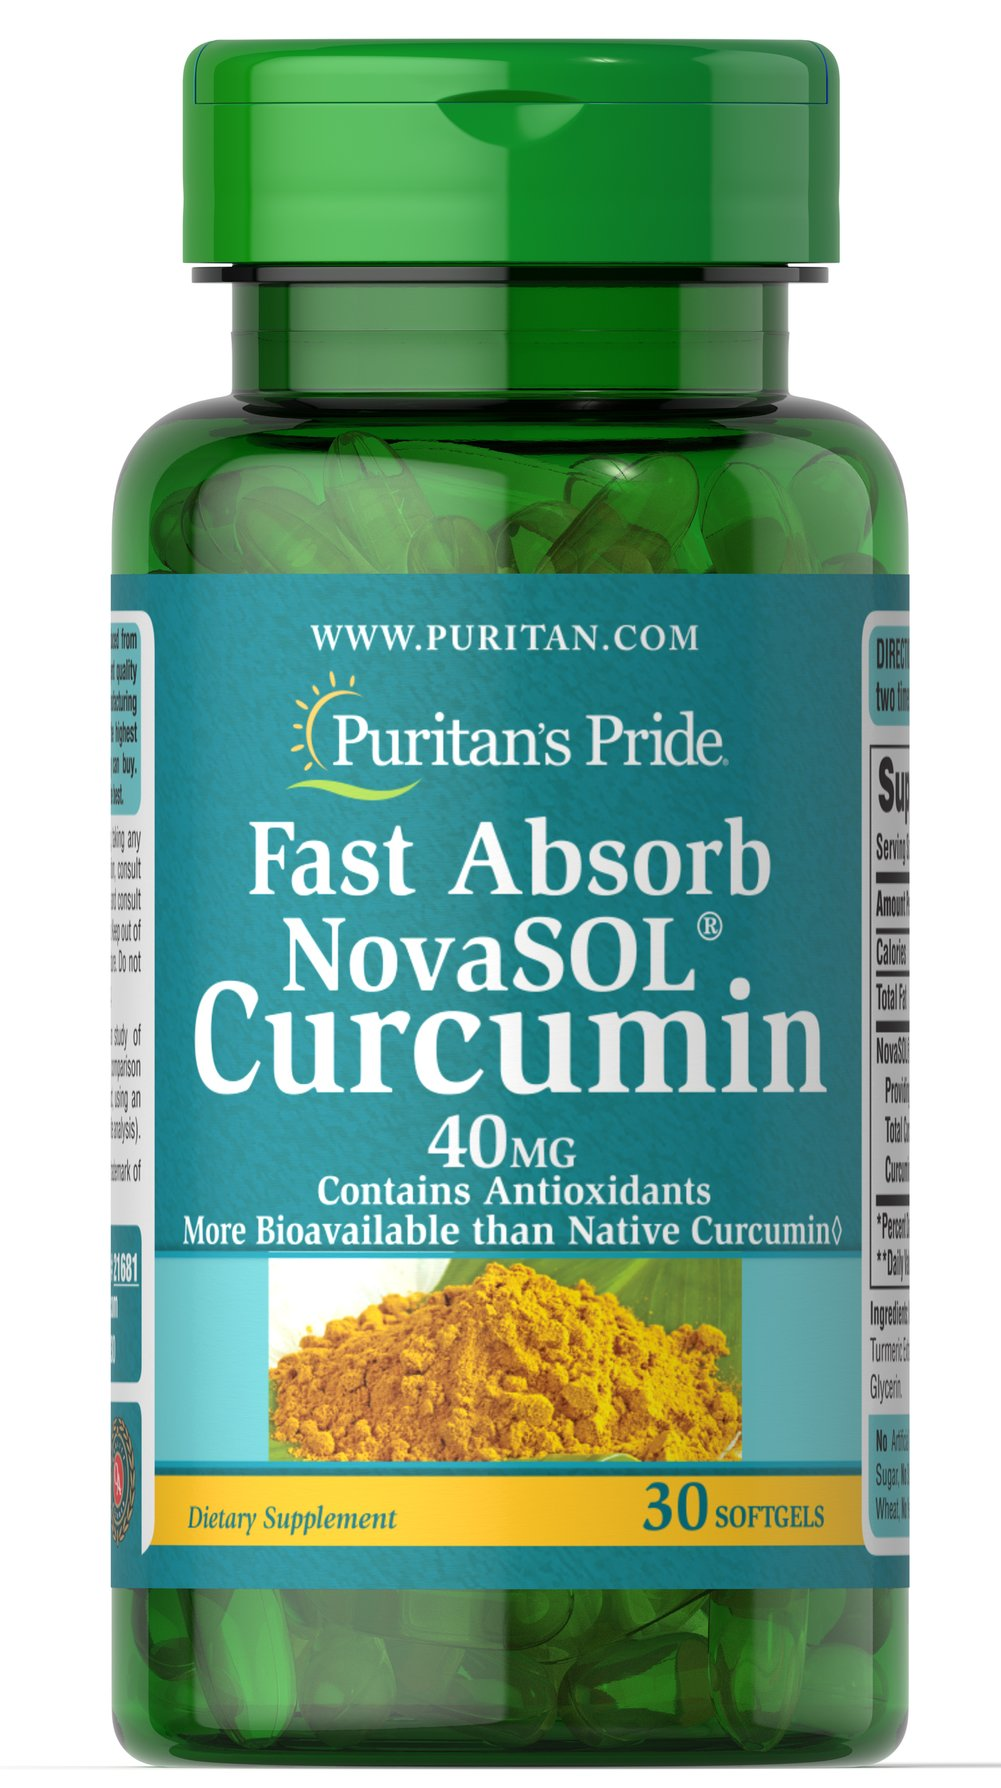 Fast Absorb NovaSOL® Curcumin 40mg Thumbnail Alternate Bottle View